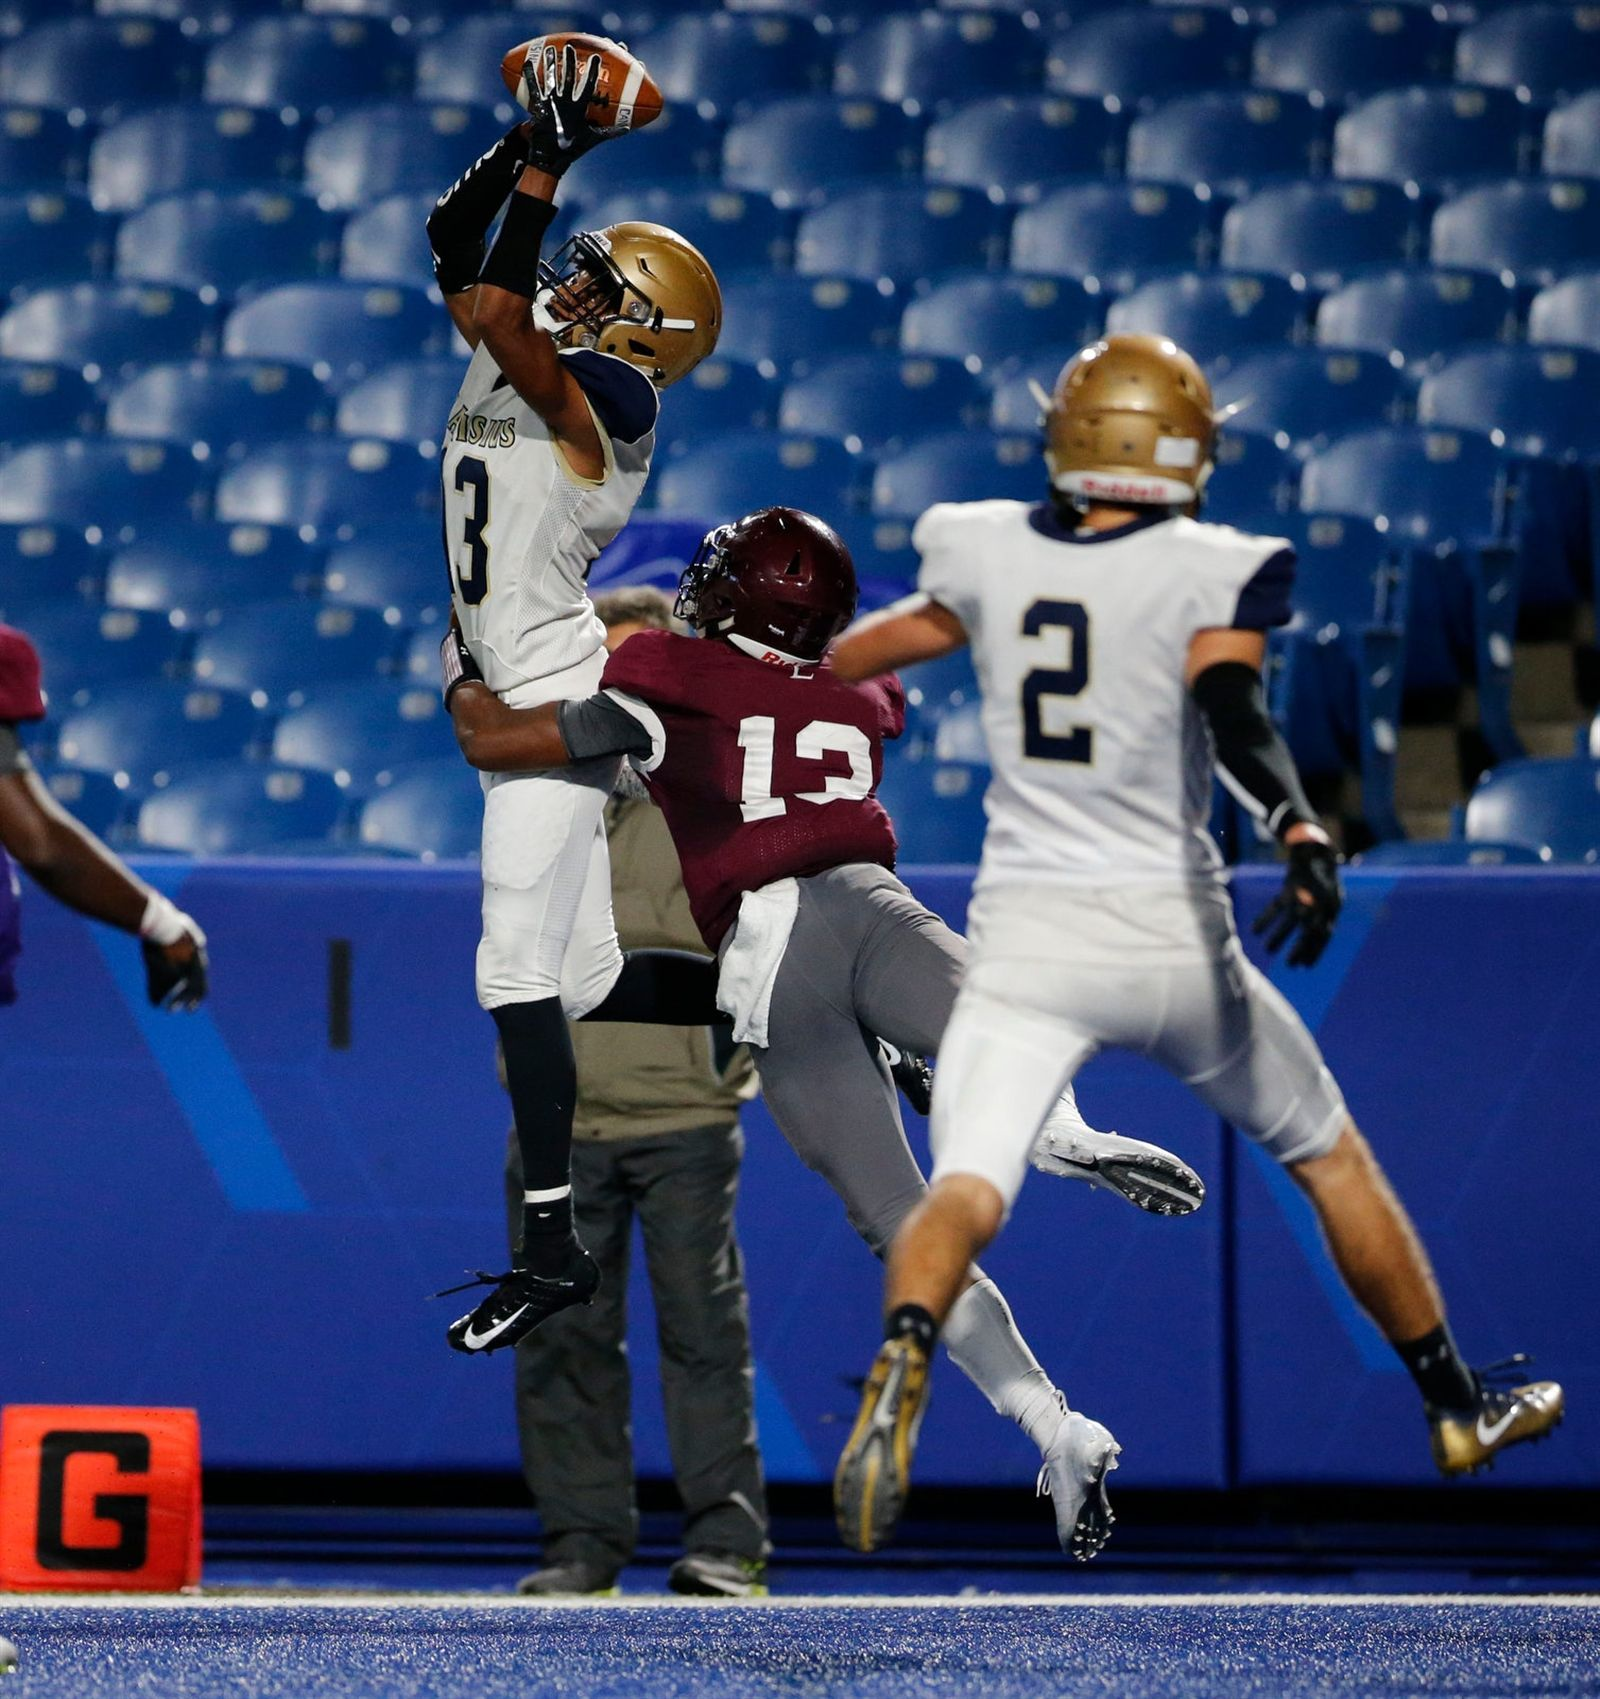 Canisius receiver Jason Martin pulls in a pass for the game-winning touchdown against St. Joe's with seven seconds left in the fourth quarter at New Era Field. Canisius won the game 34-28.